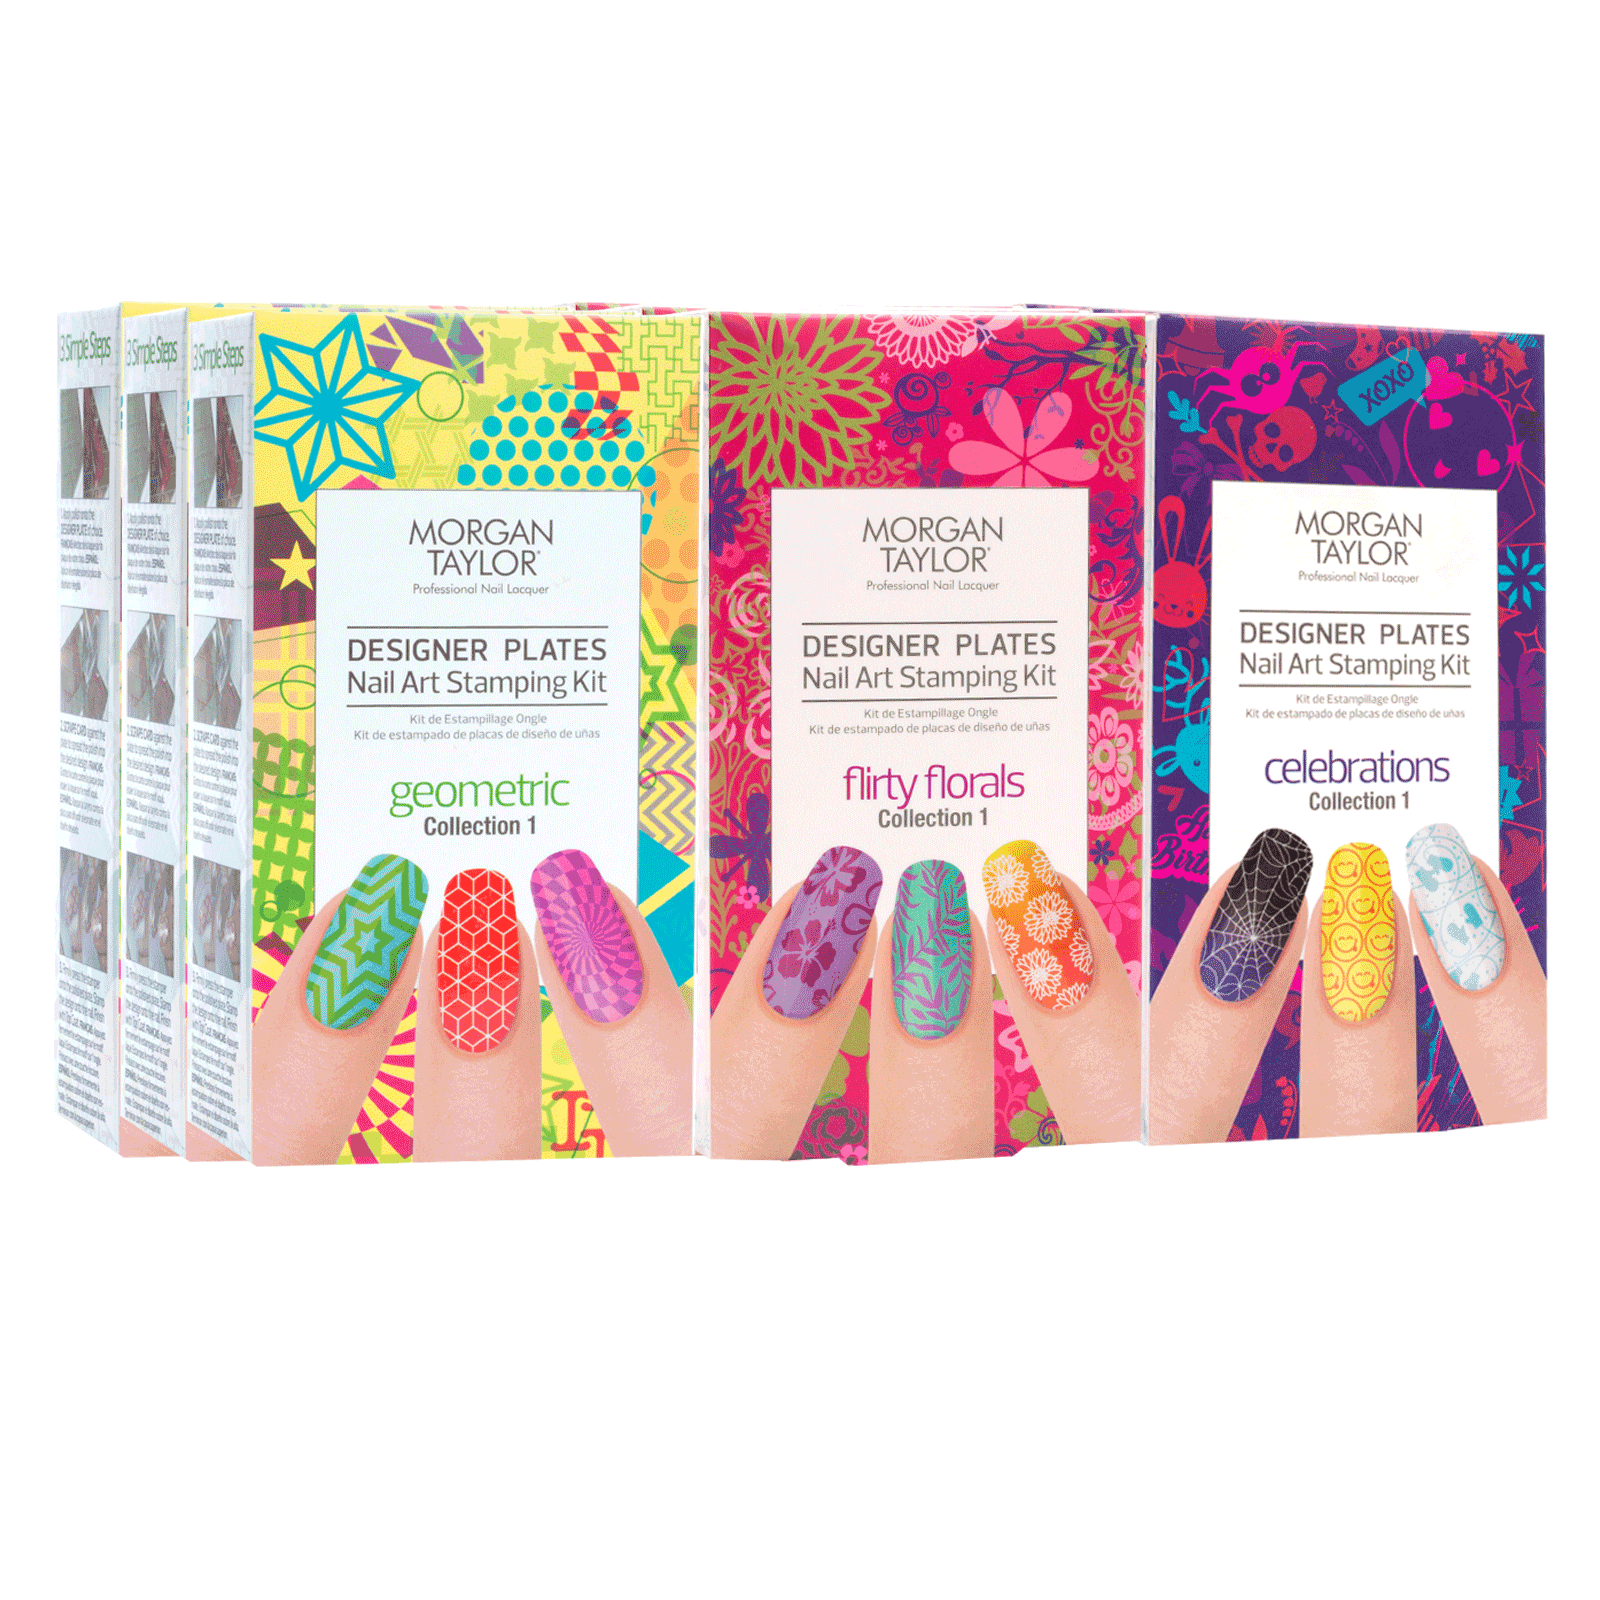 Nail Art Stamping Kit - 9 count display - Morgan Taylor | CosmoProf